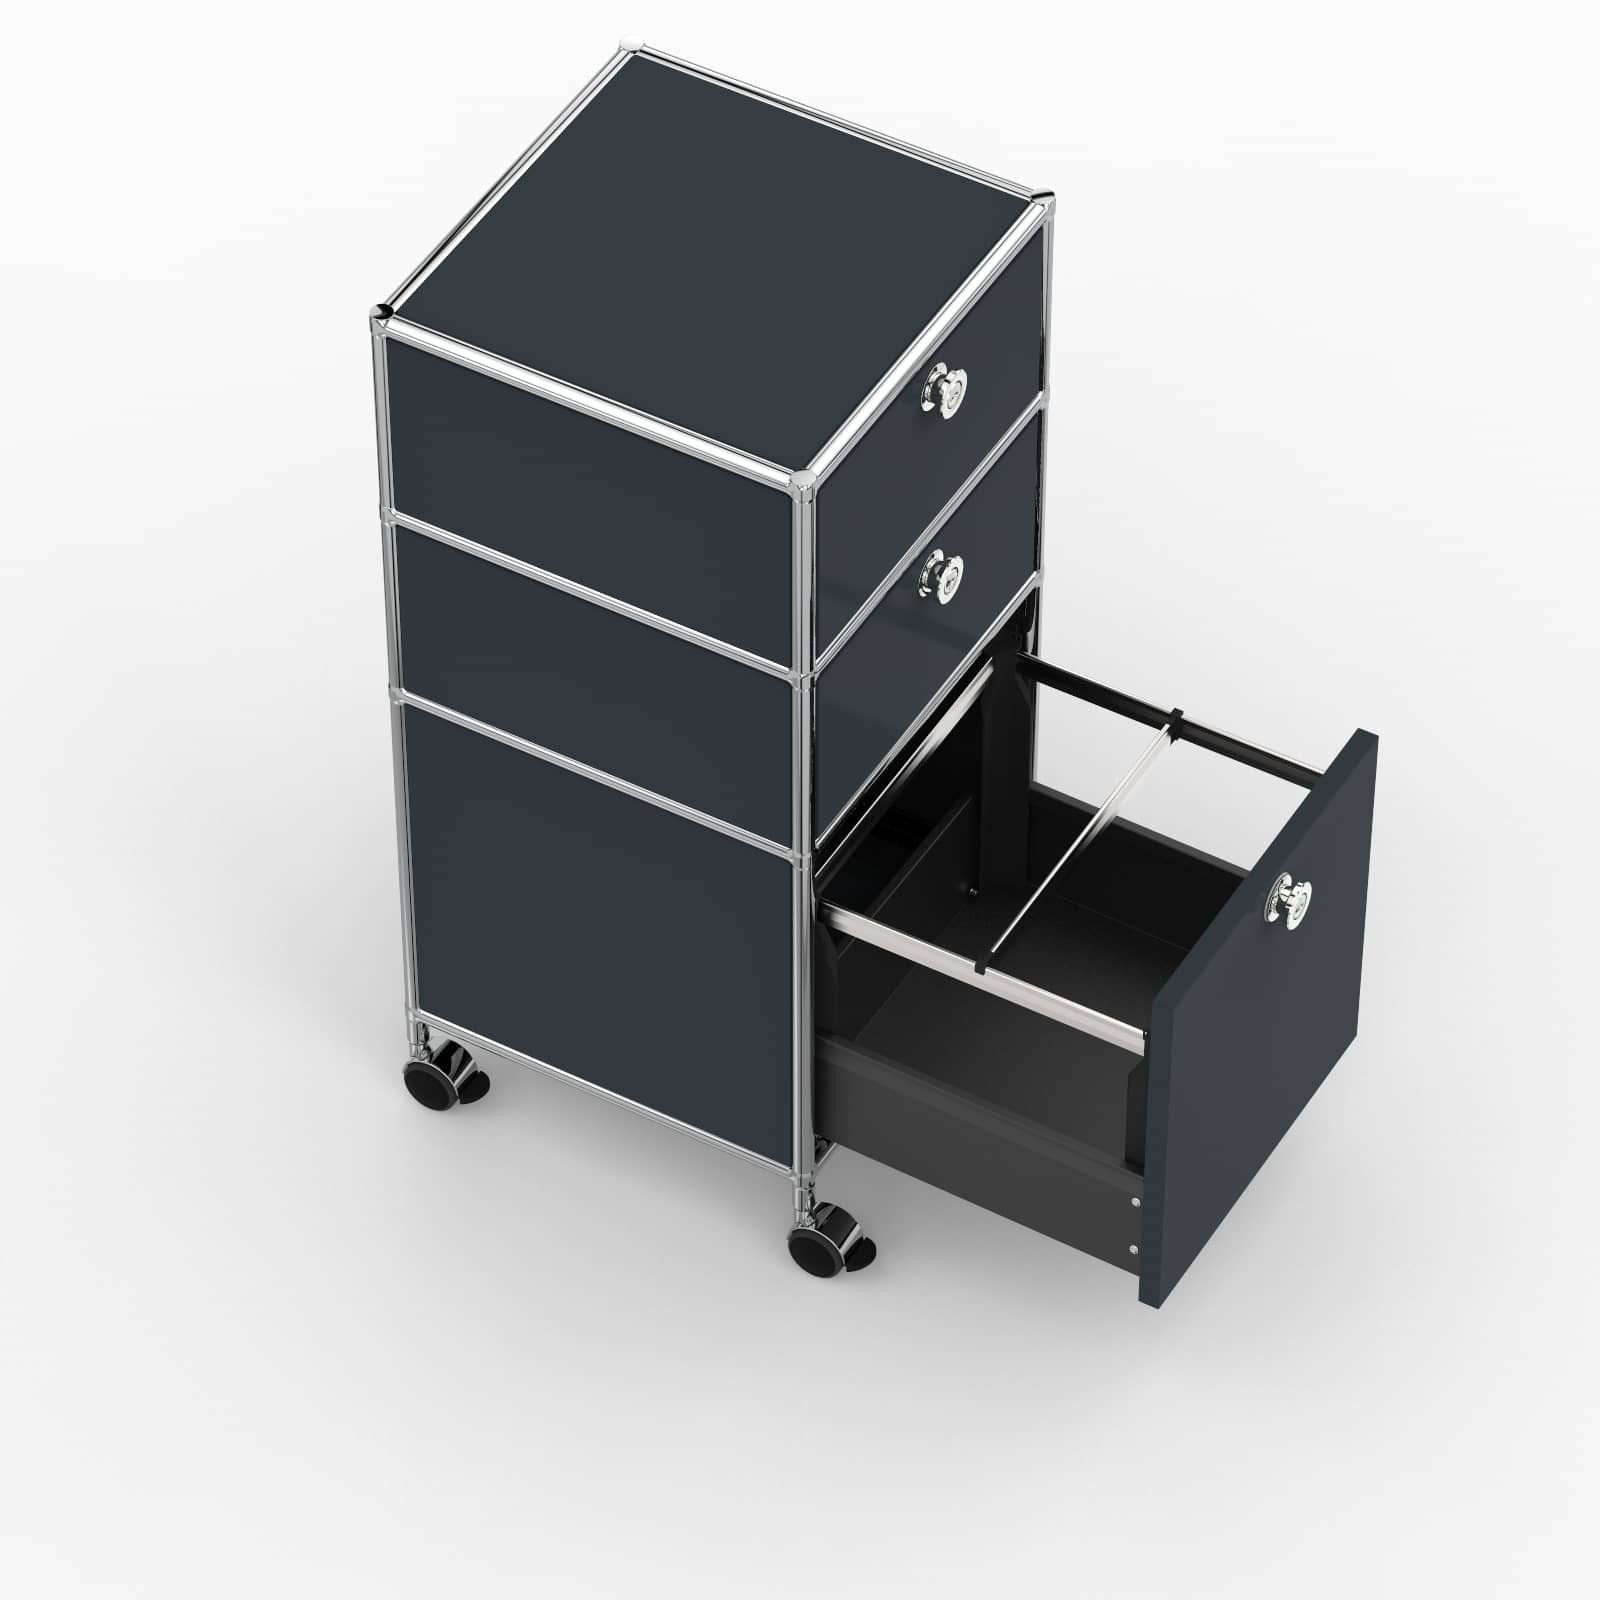 Rollcontainer Design Rollcontainer 40cm 2xes 1xhg Ahr Anthrazitgrau Ral